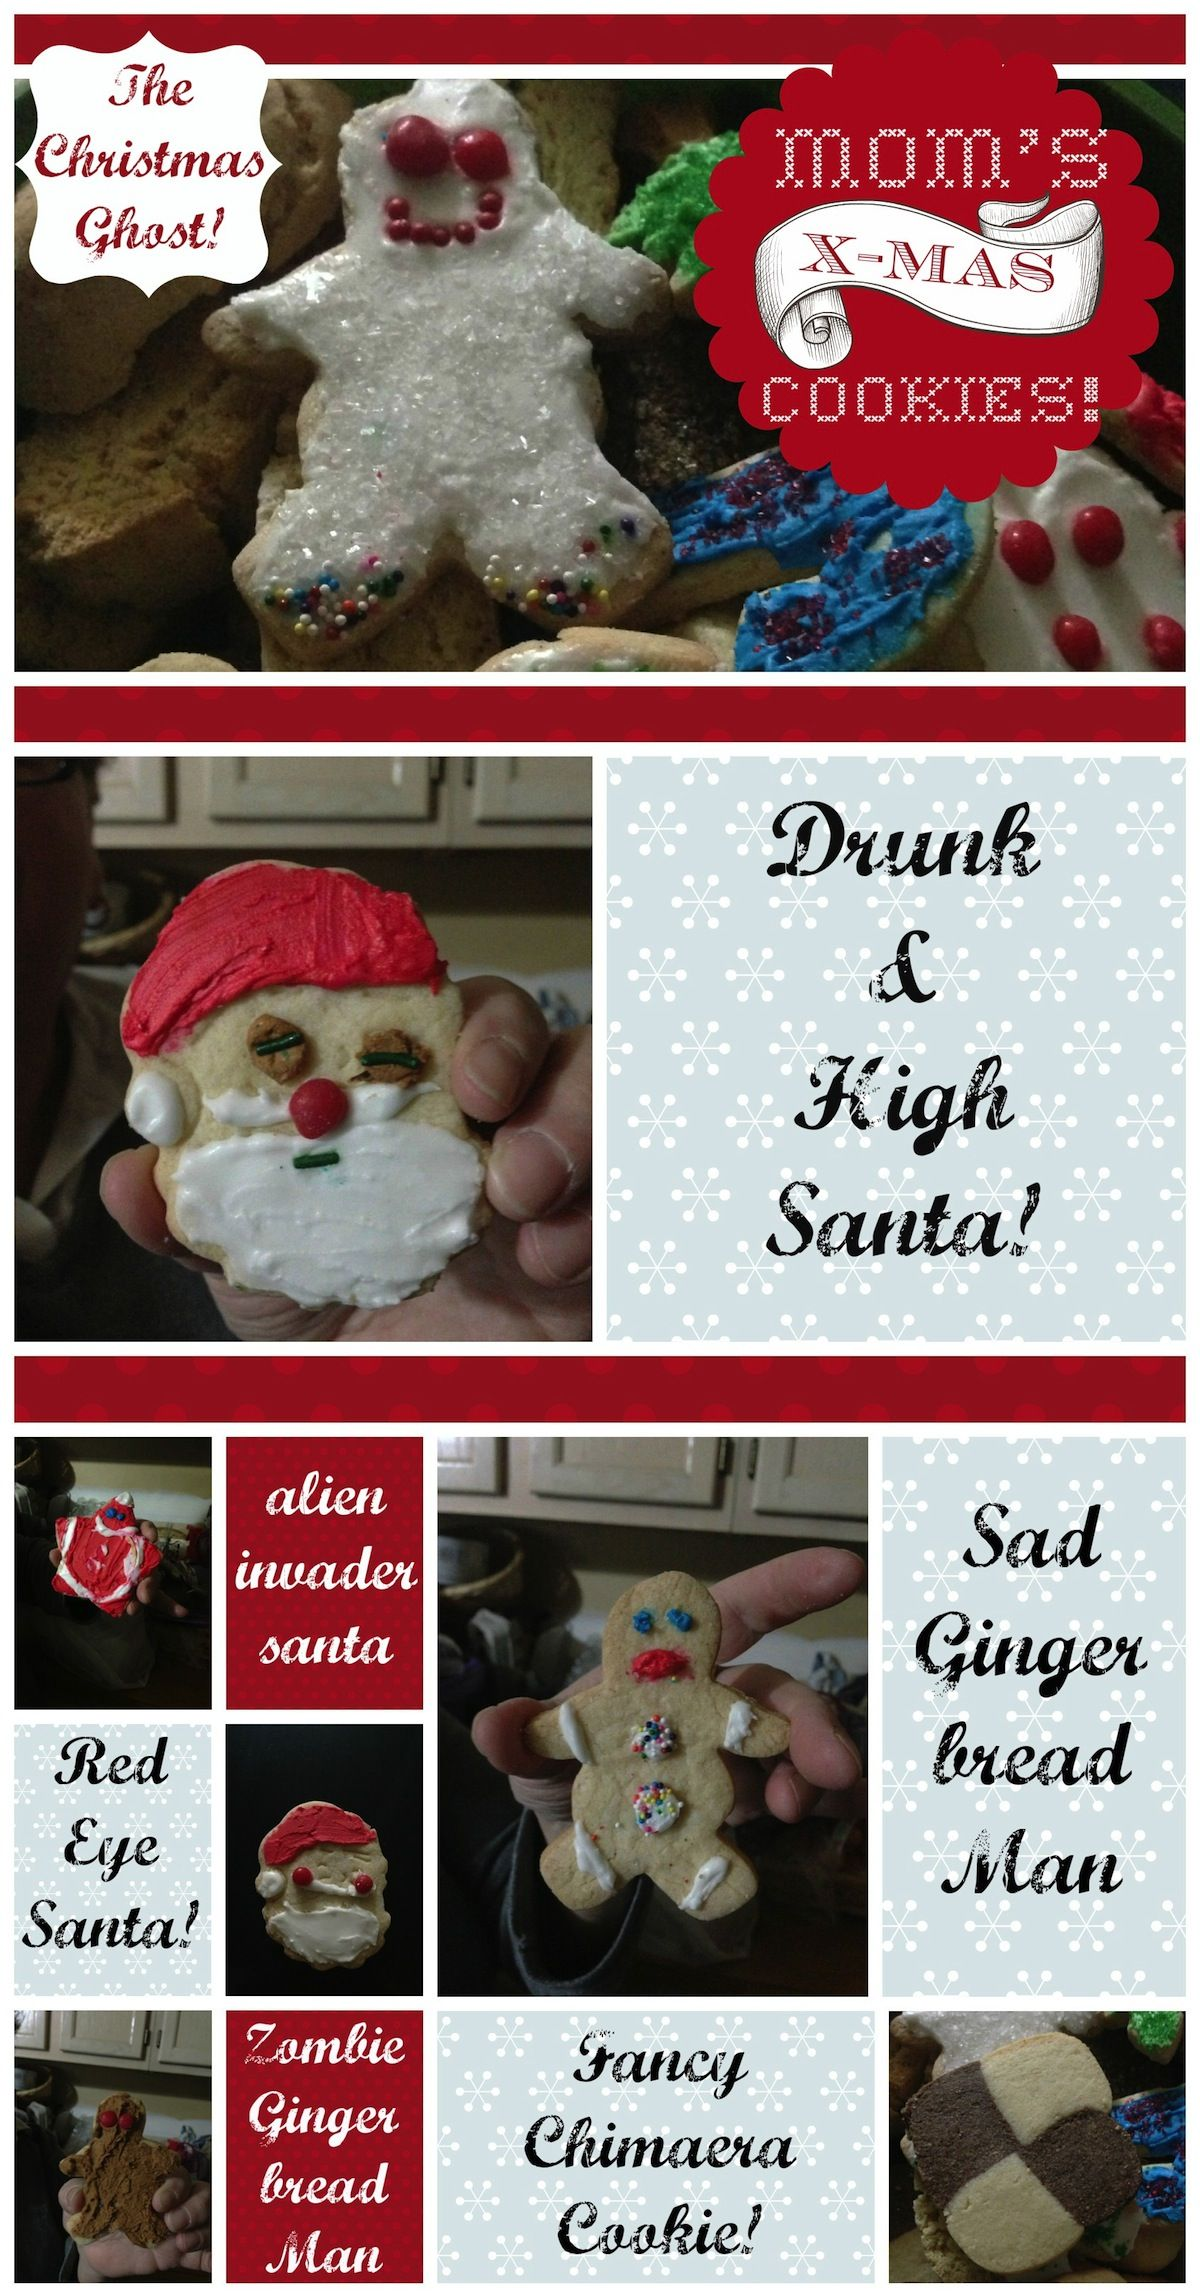 X-mas Cookie Rejects! Just as tasty!    http://www.linsight.net/2012/12/14/moms-cookie-characters/